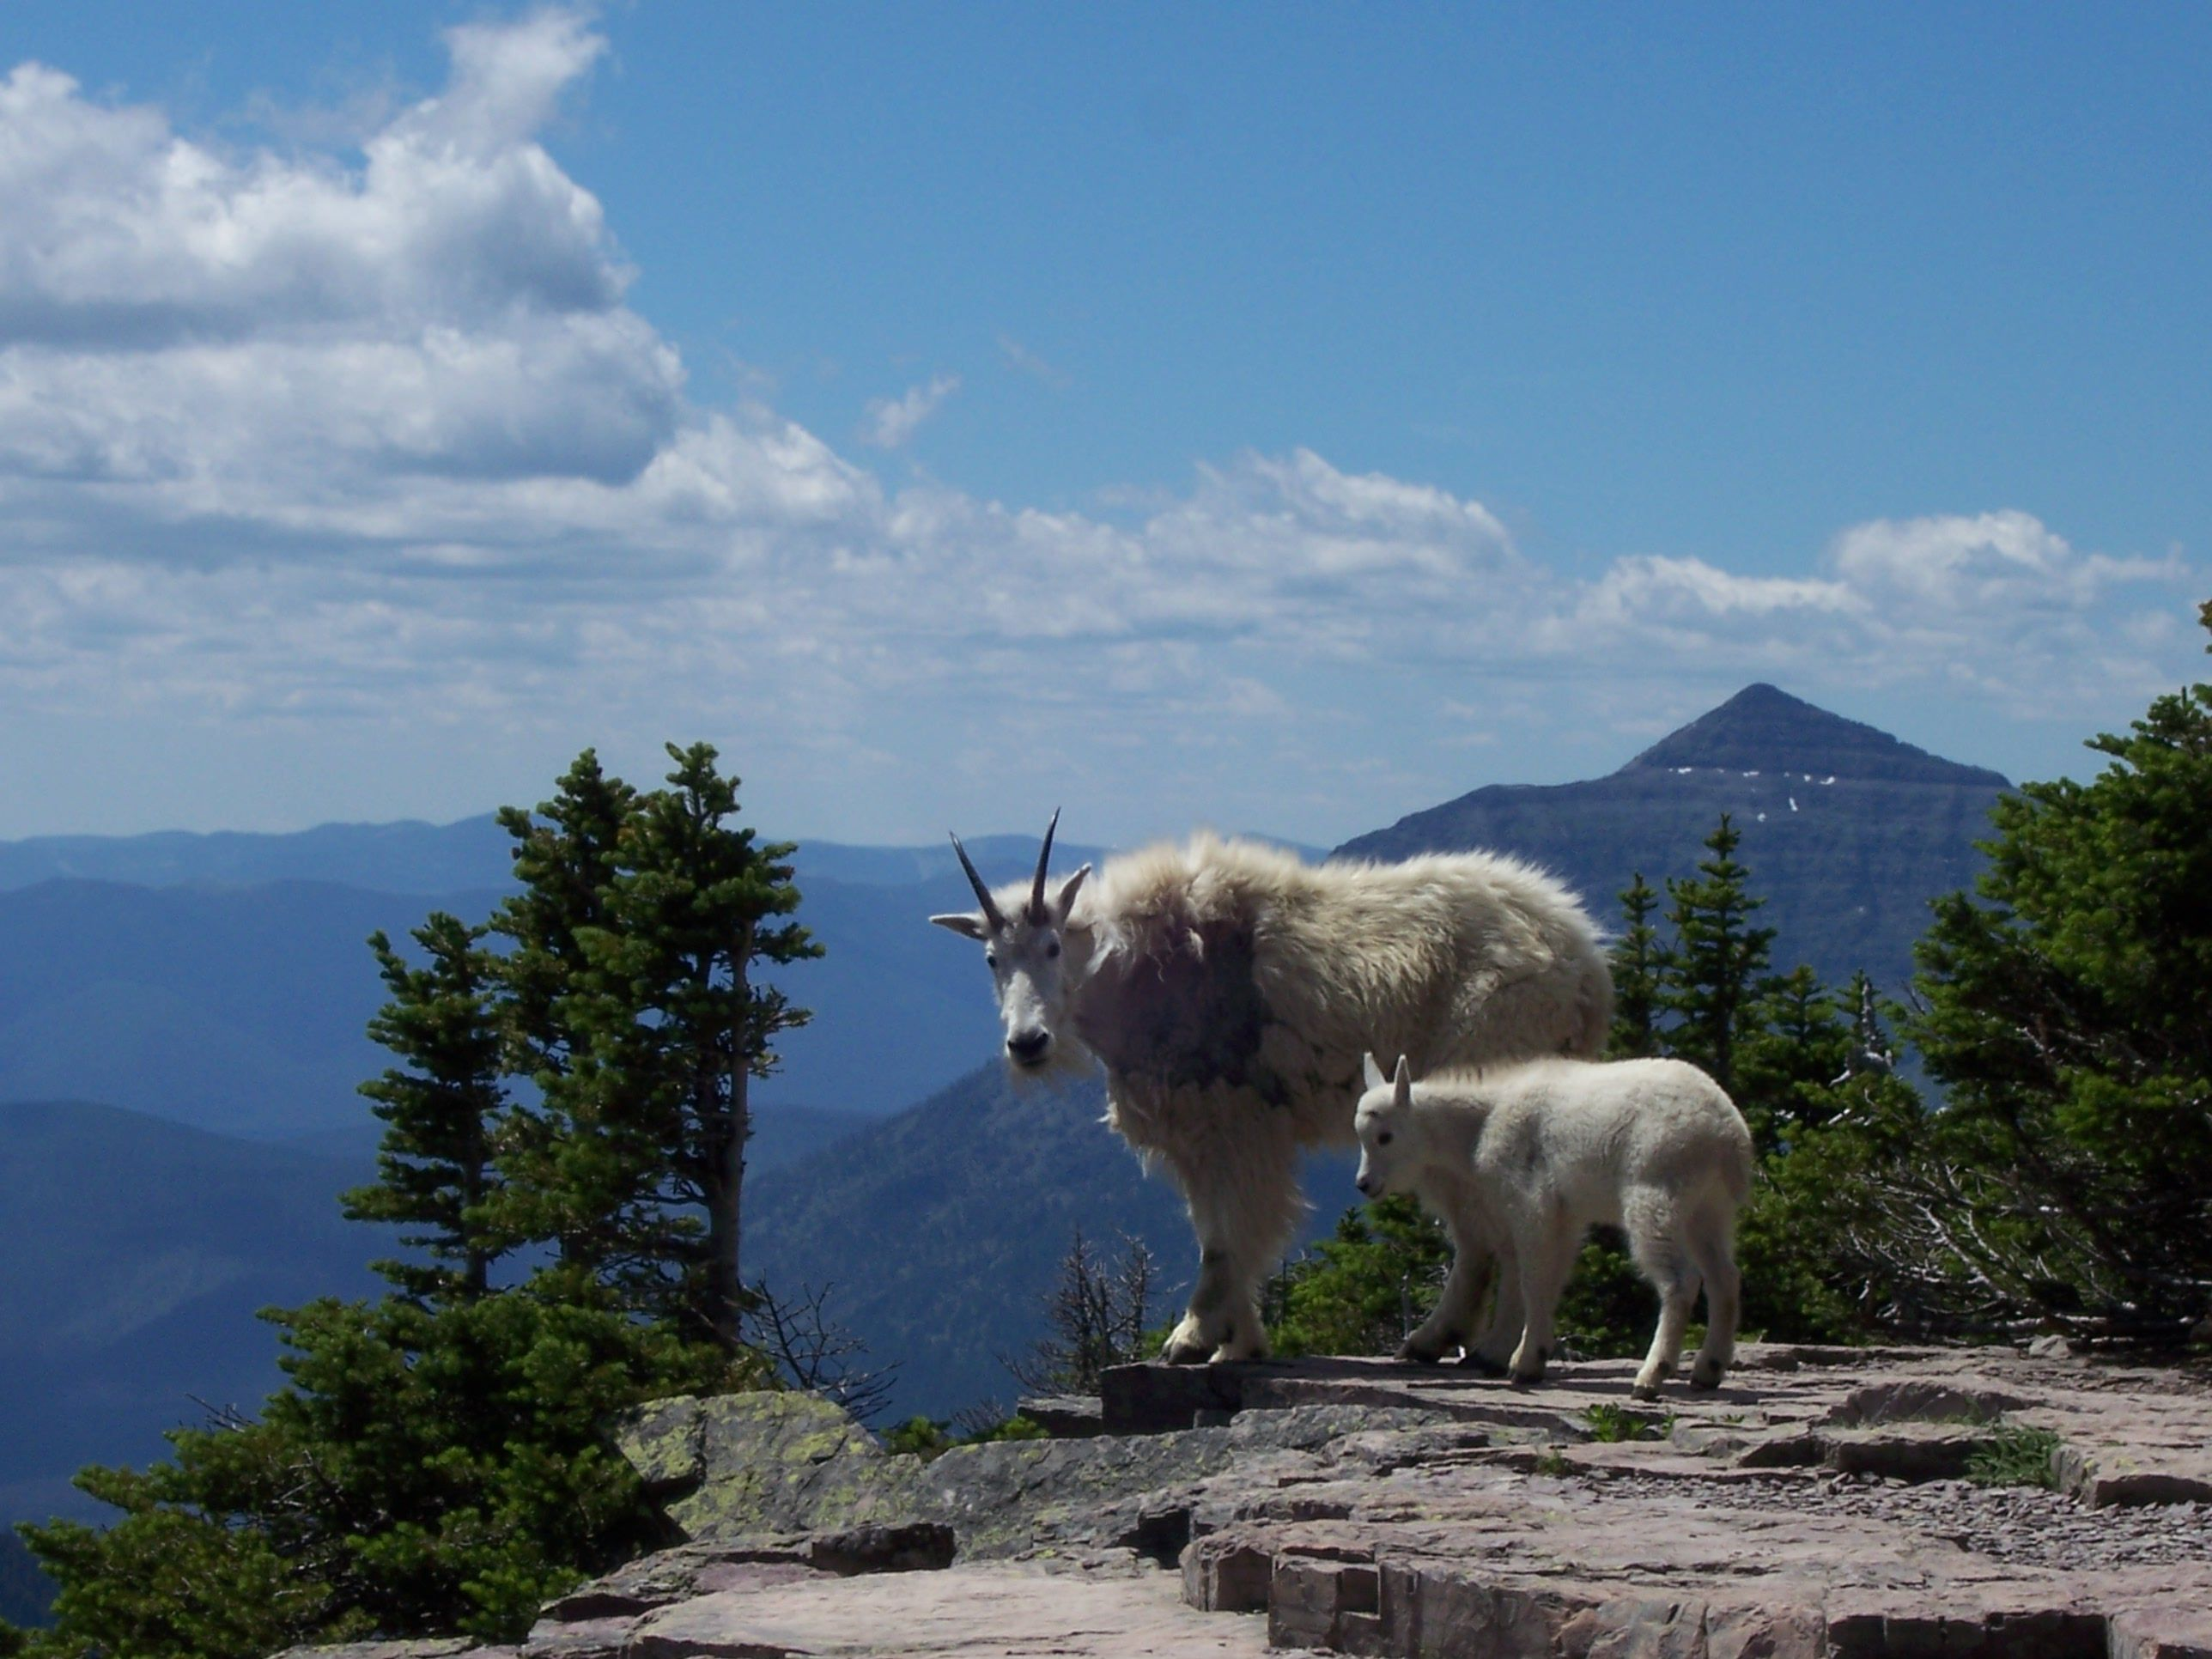 Mountain goats and scenery along Hidden Lake Trail, Glacier National Park, MT